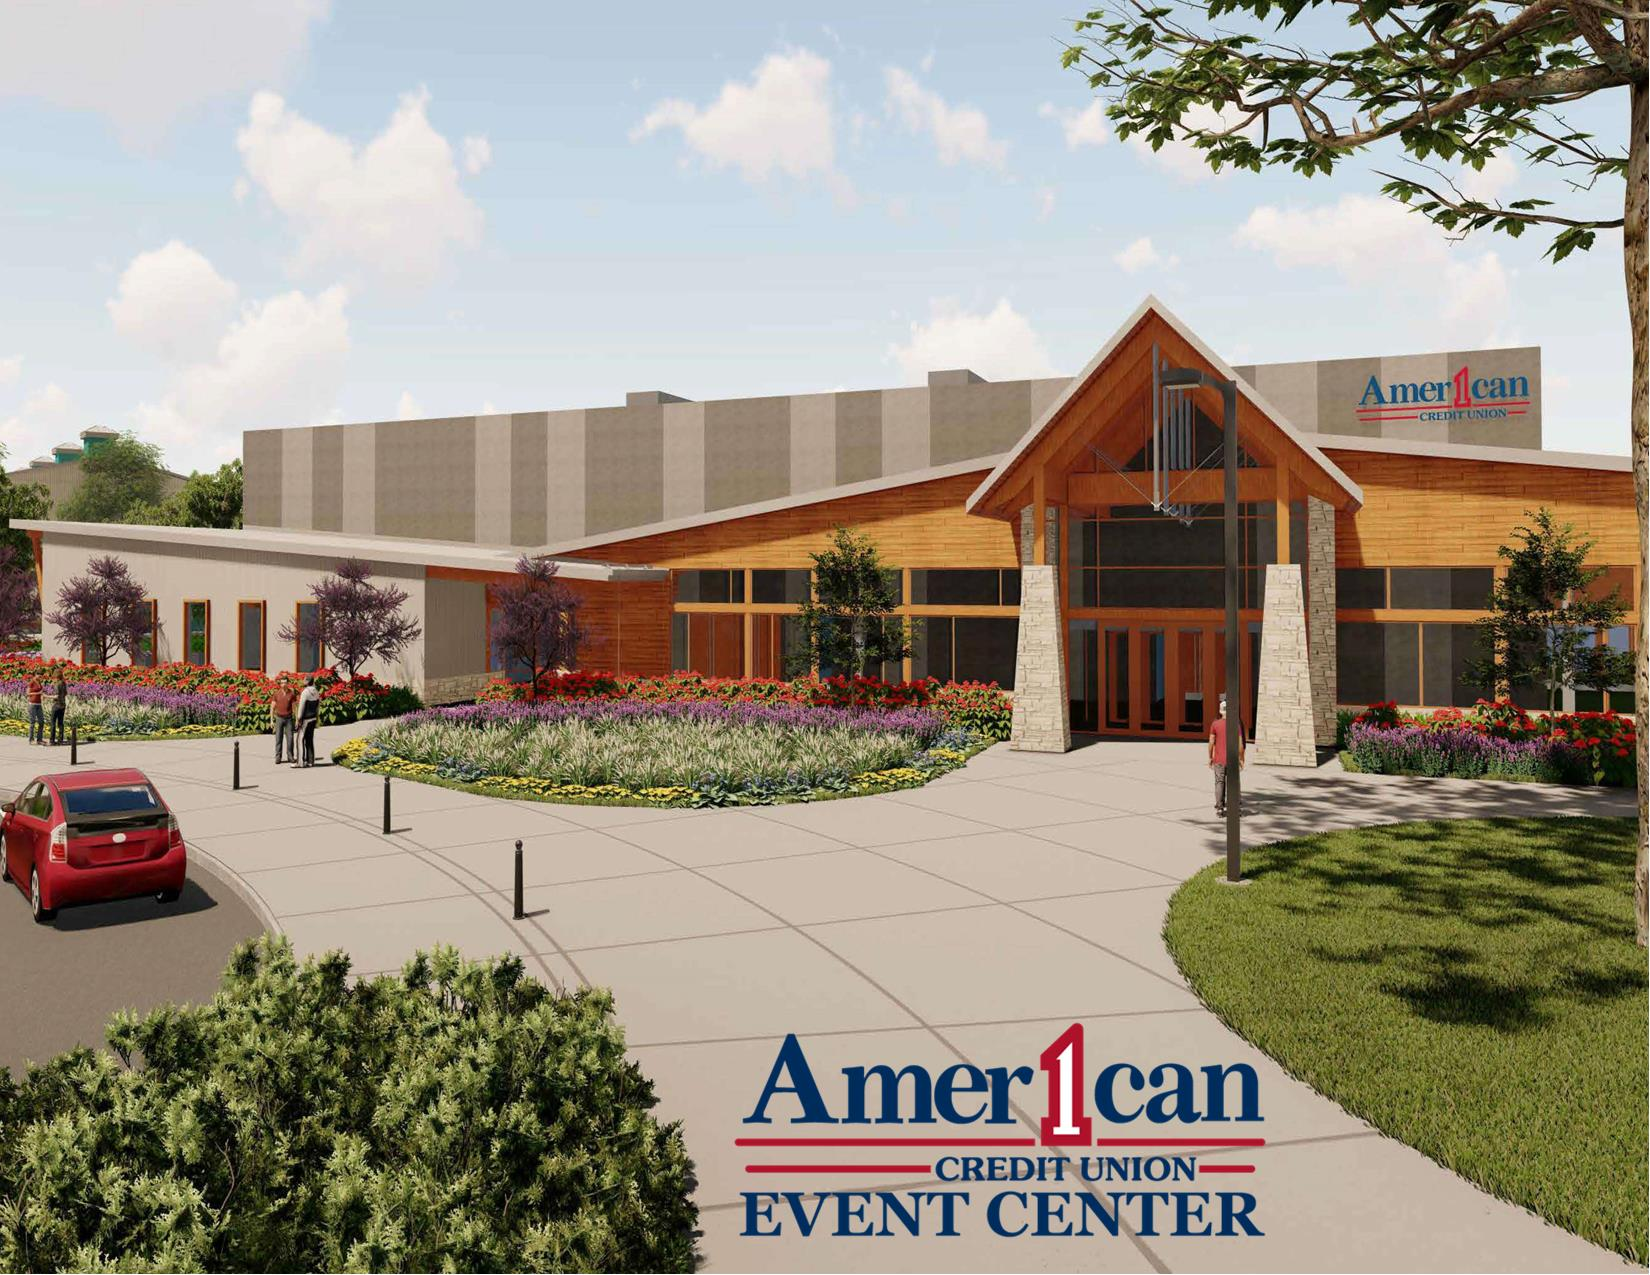 American 1 Event Center with logo